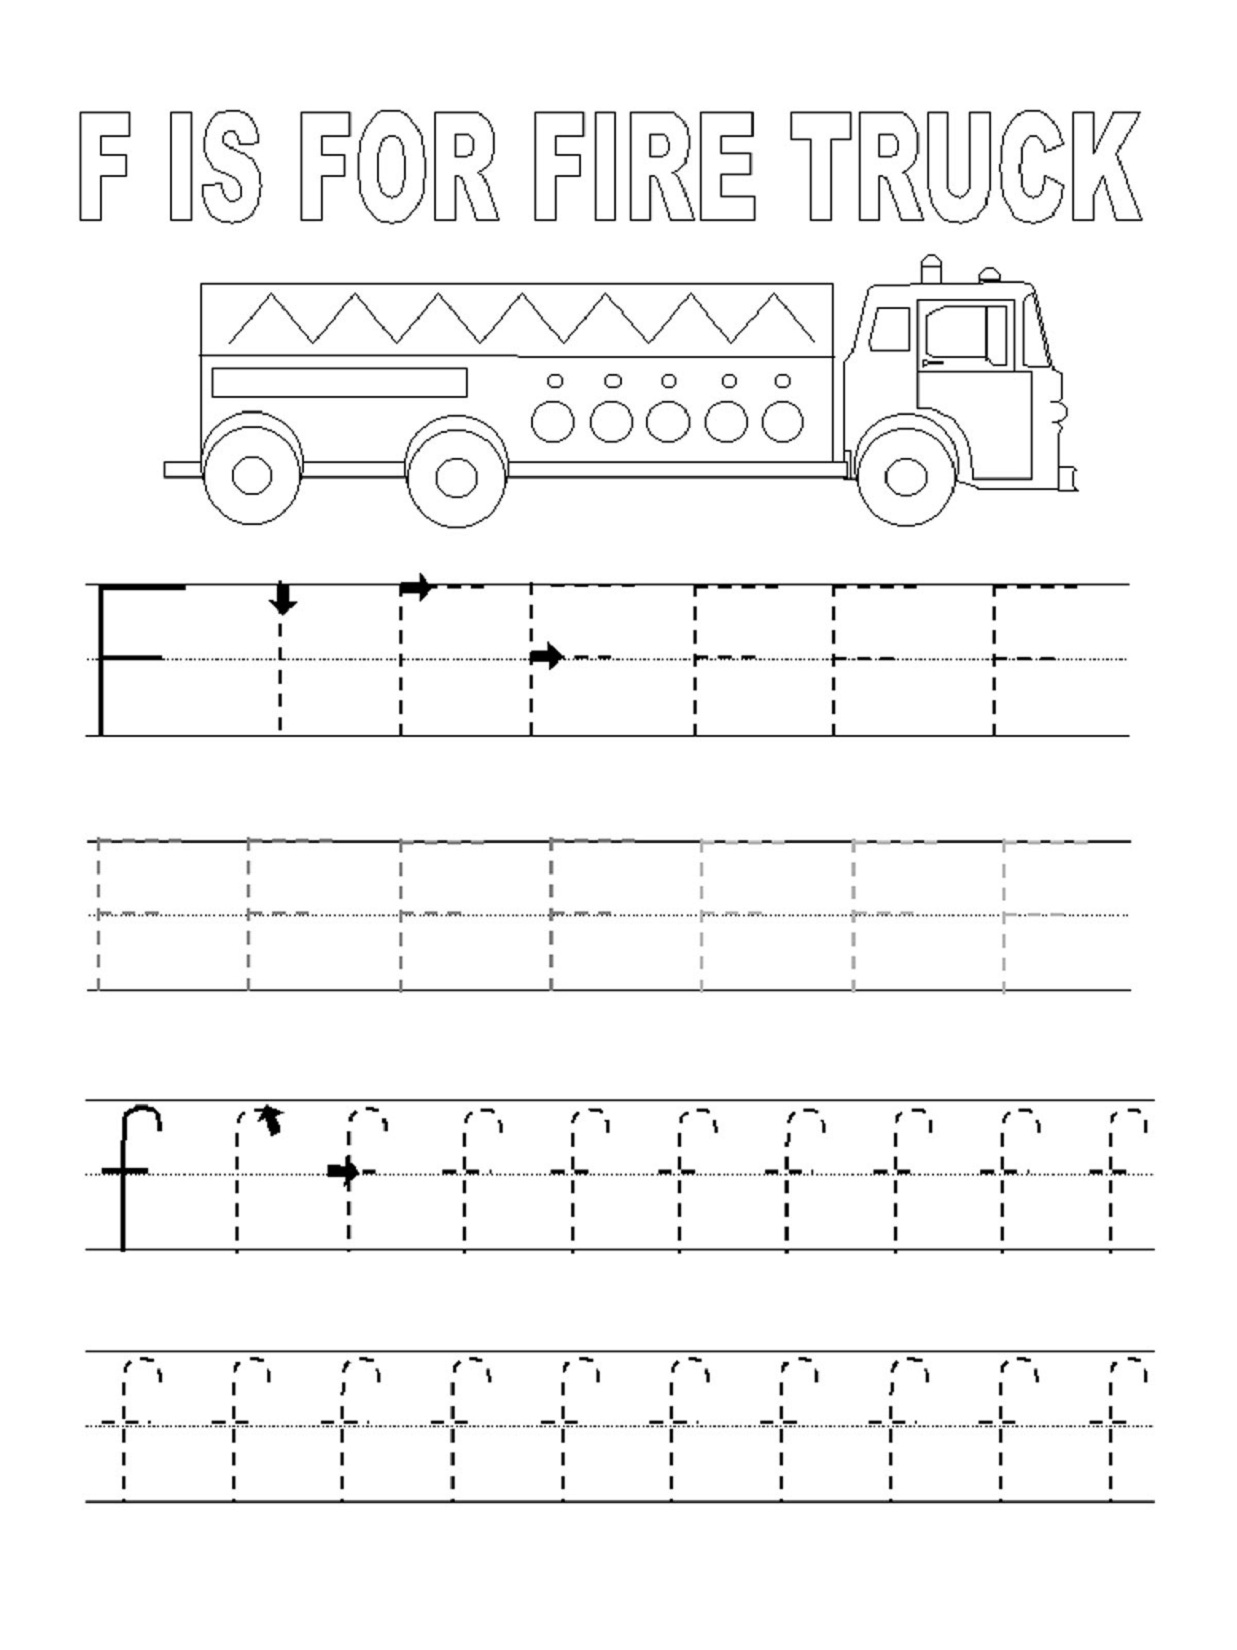 traceable-letter-worksheets-letter-F Traceable Letters Template on powerpoint design templates, decorative templates, spring flowers cut out templates, pipe templates, preschool cutting templates, sdlc examples templates, printable puppet templates,